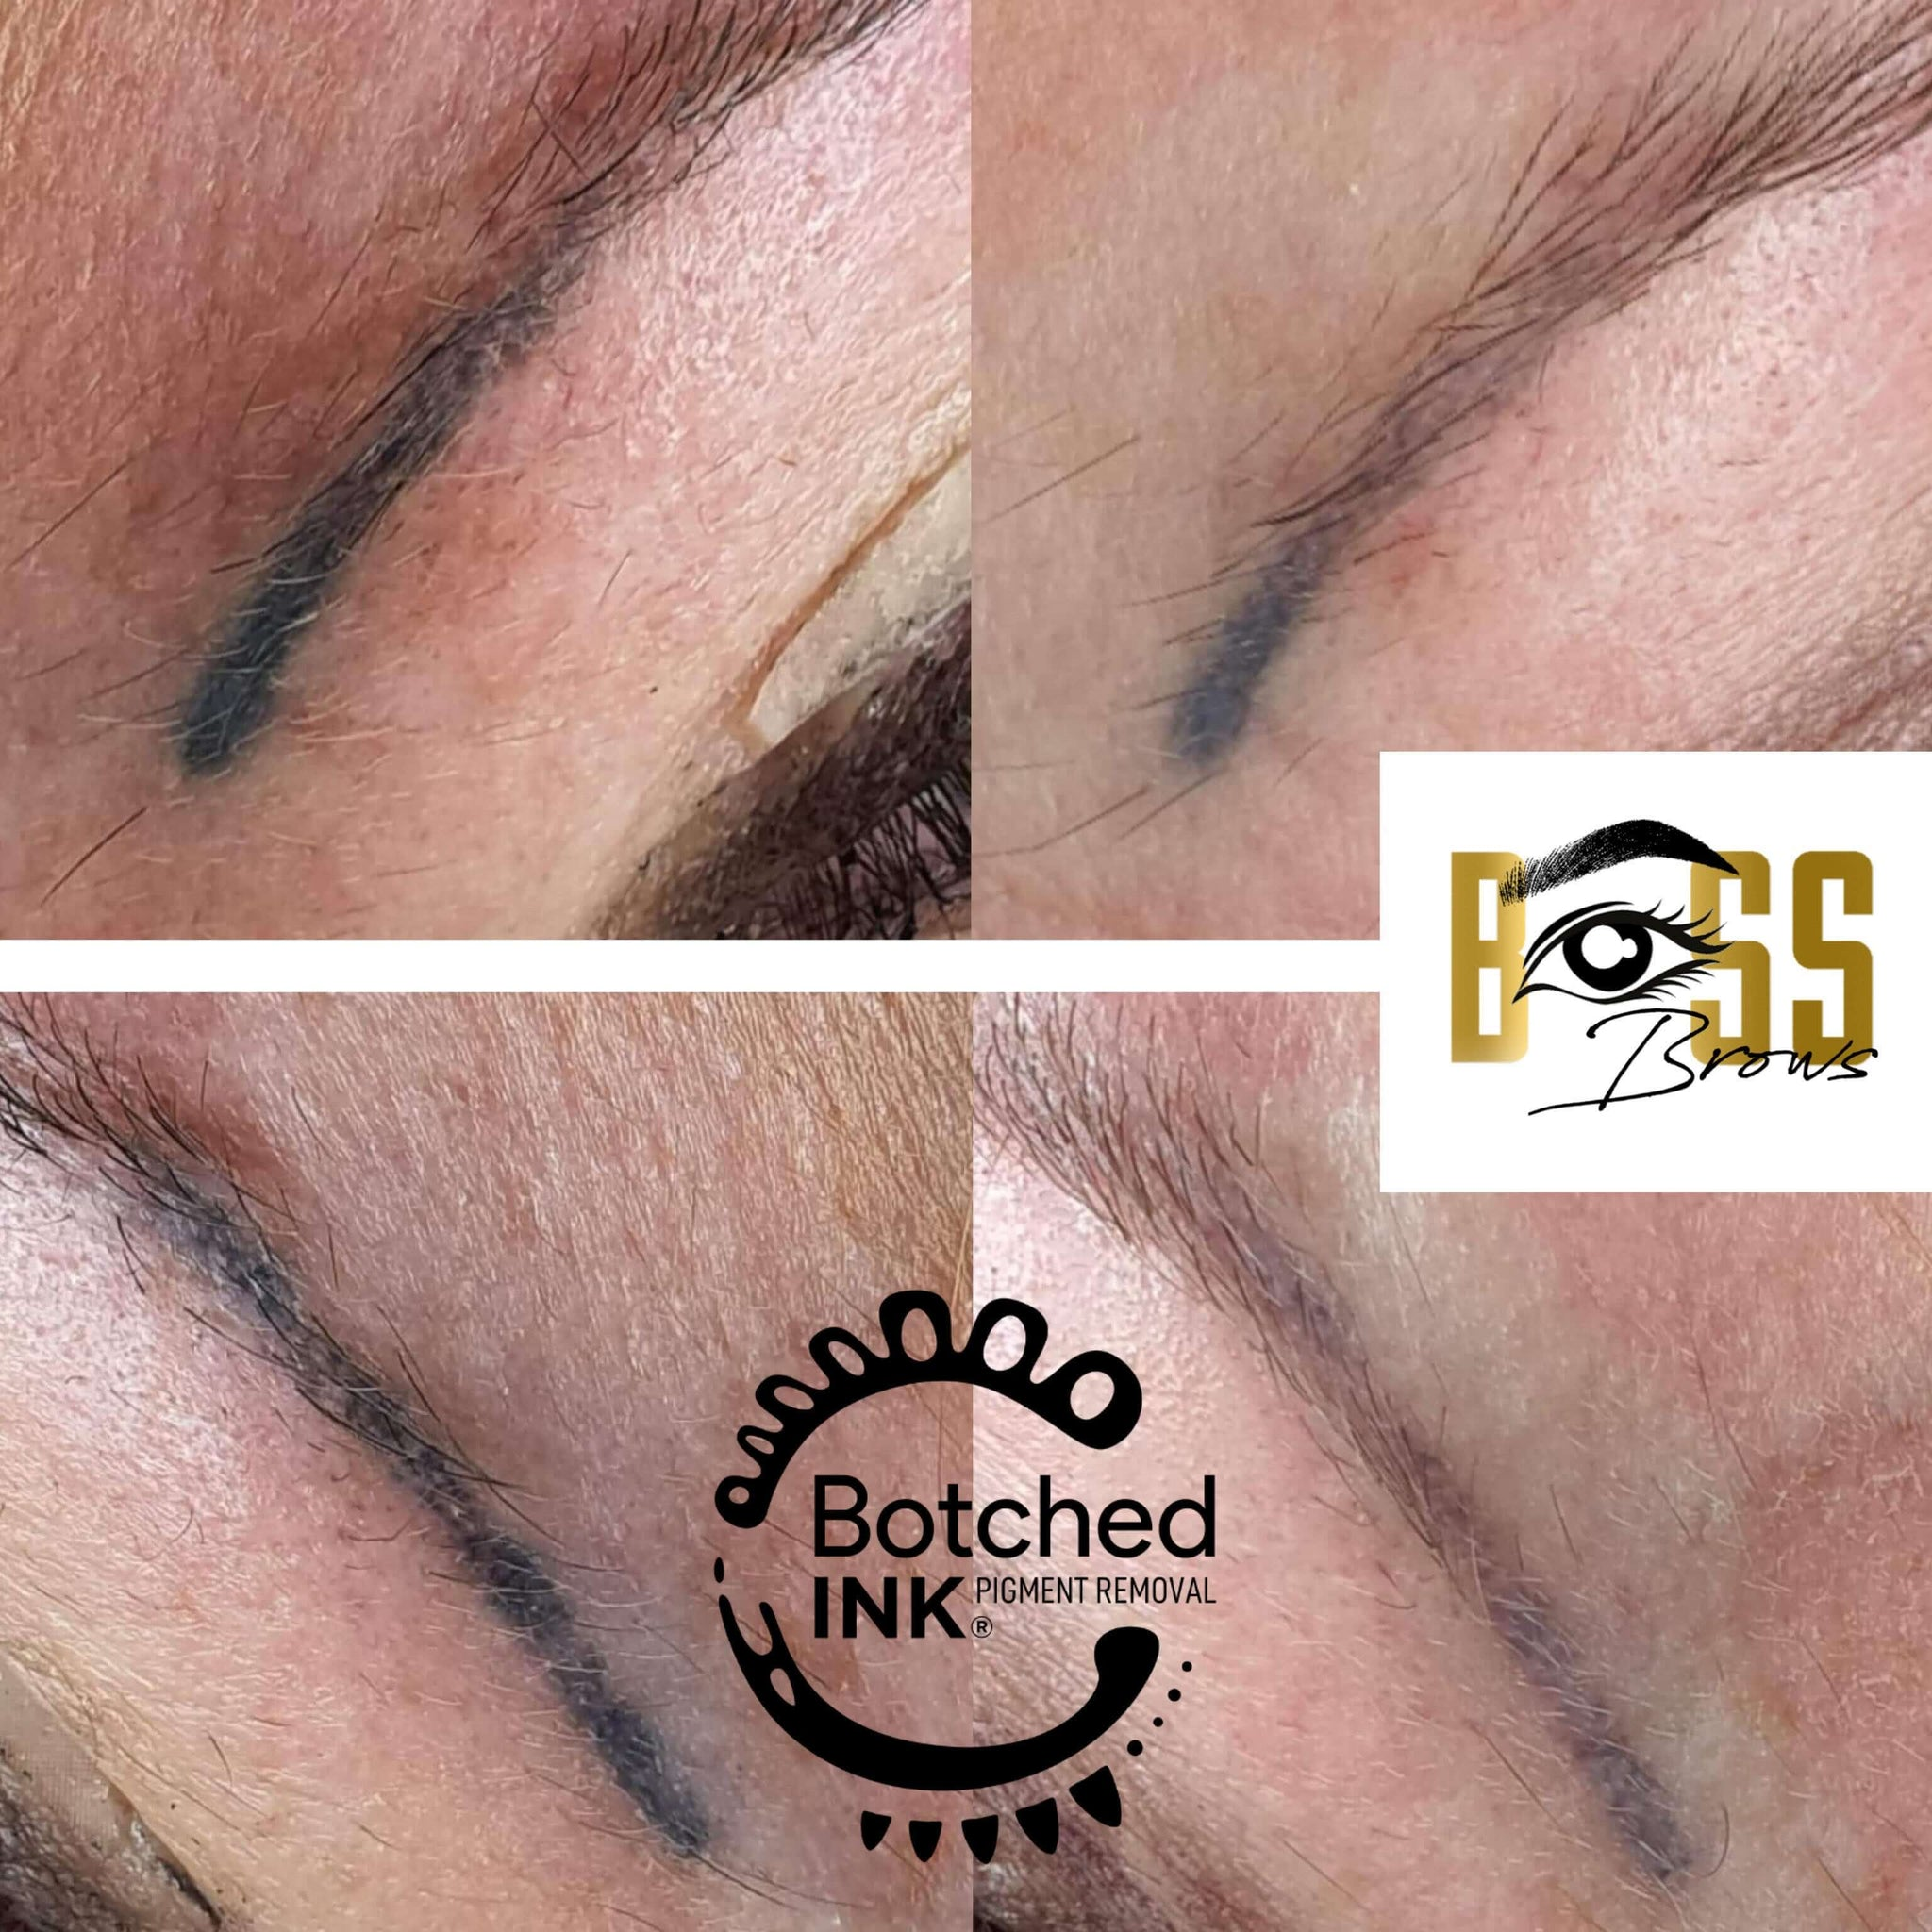 Botched Ink saline tattoo removal results before and after